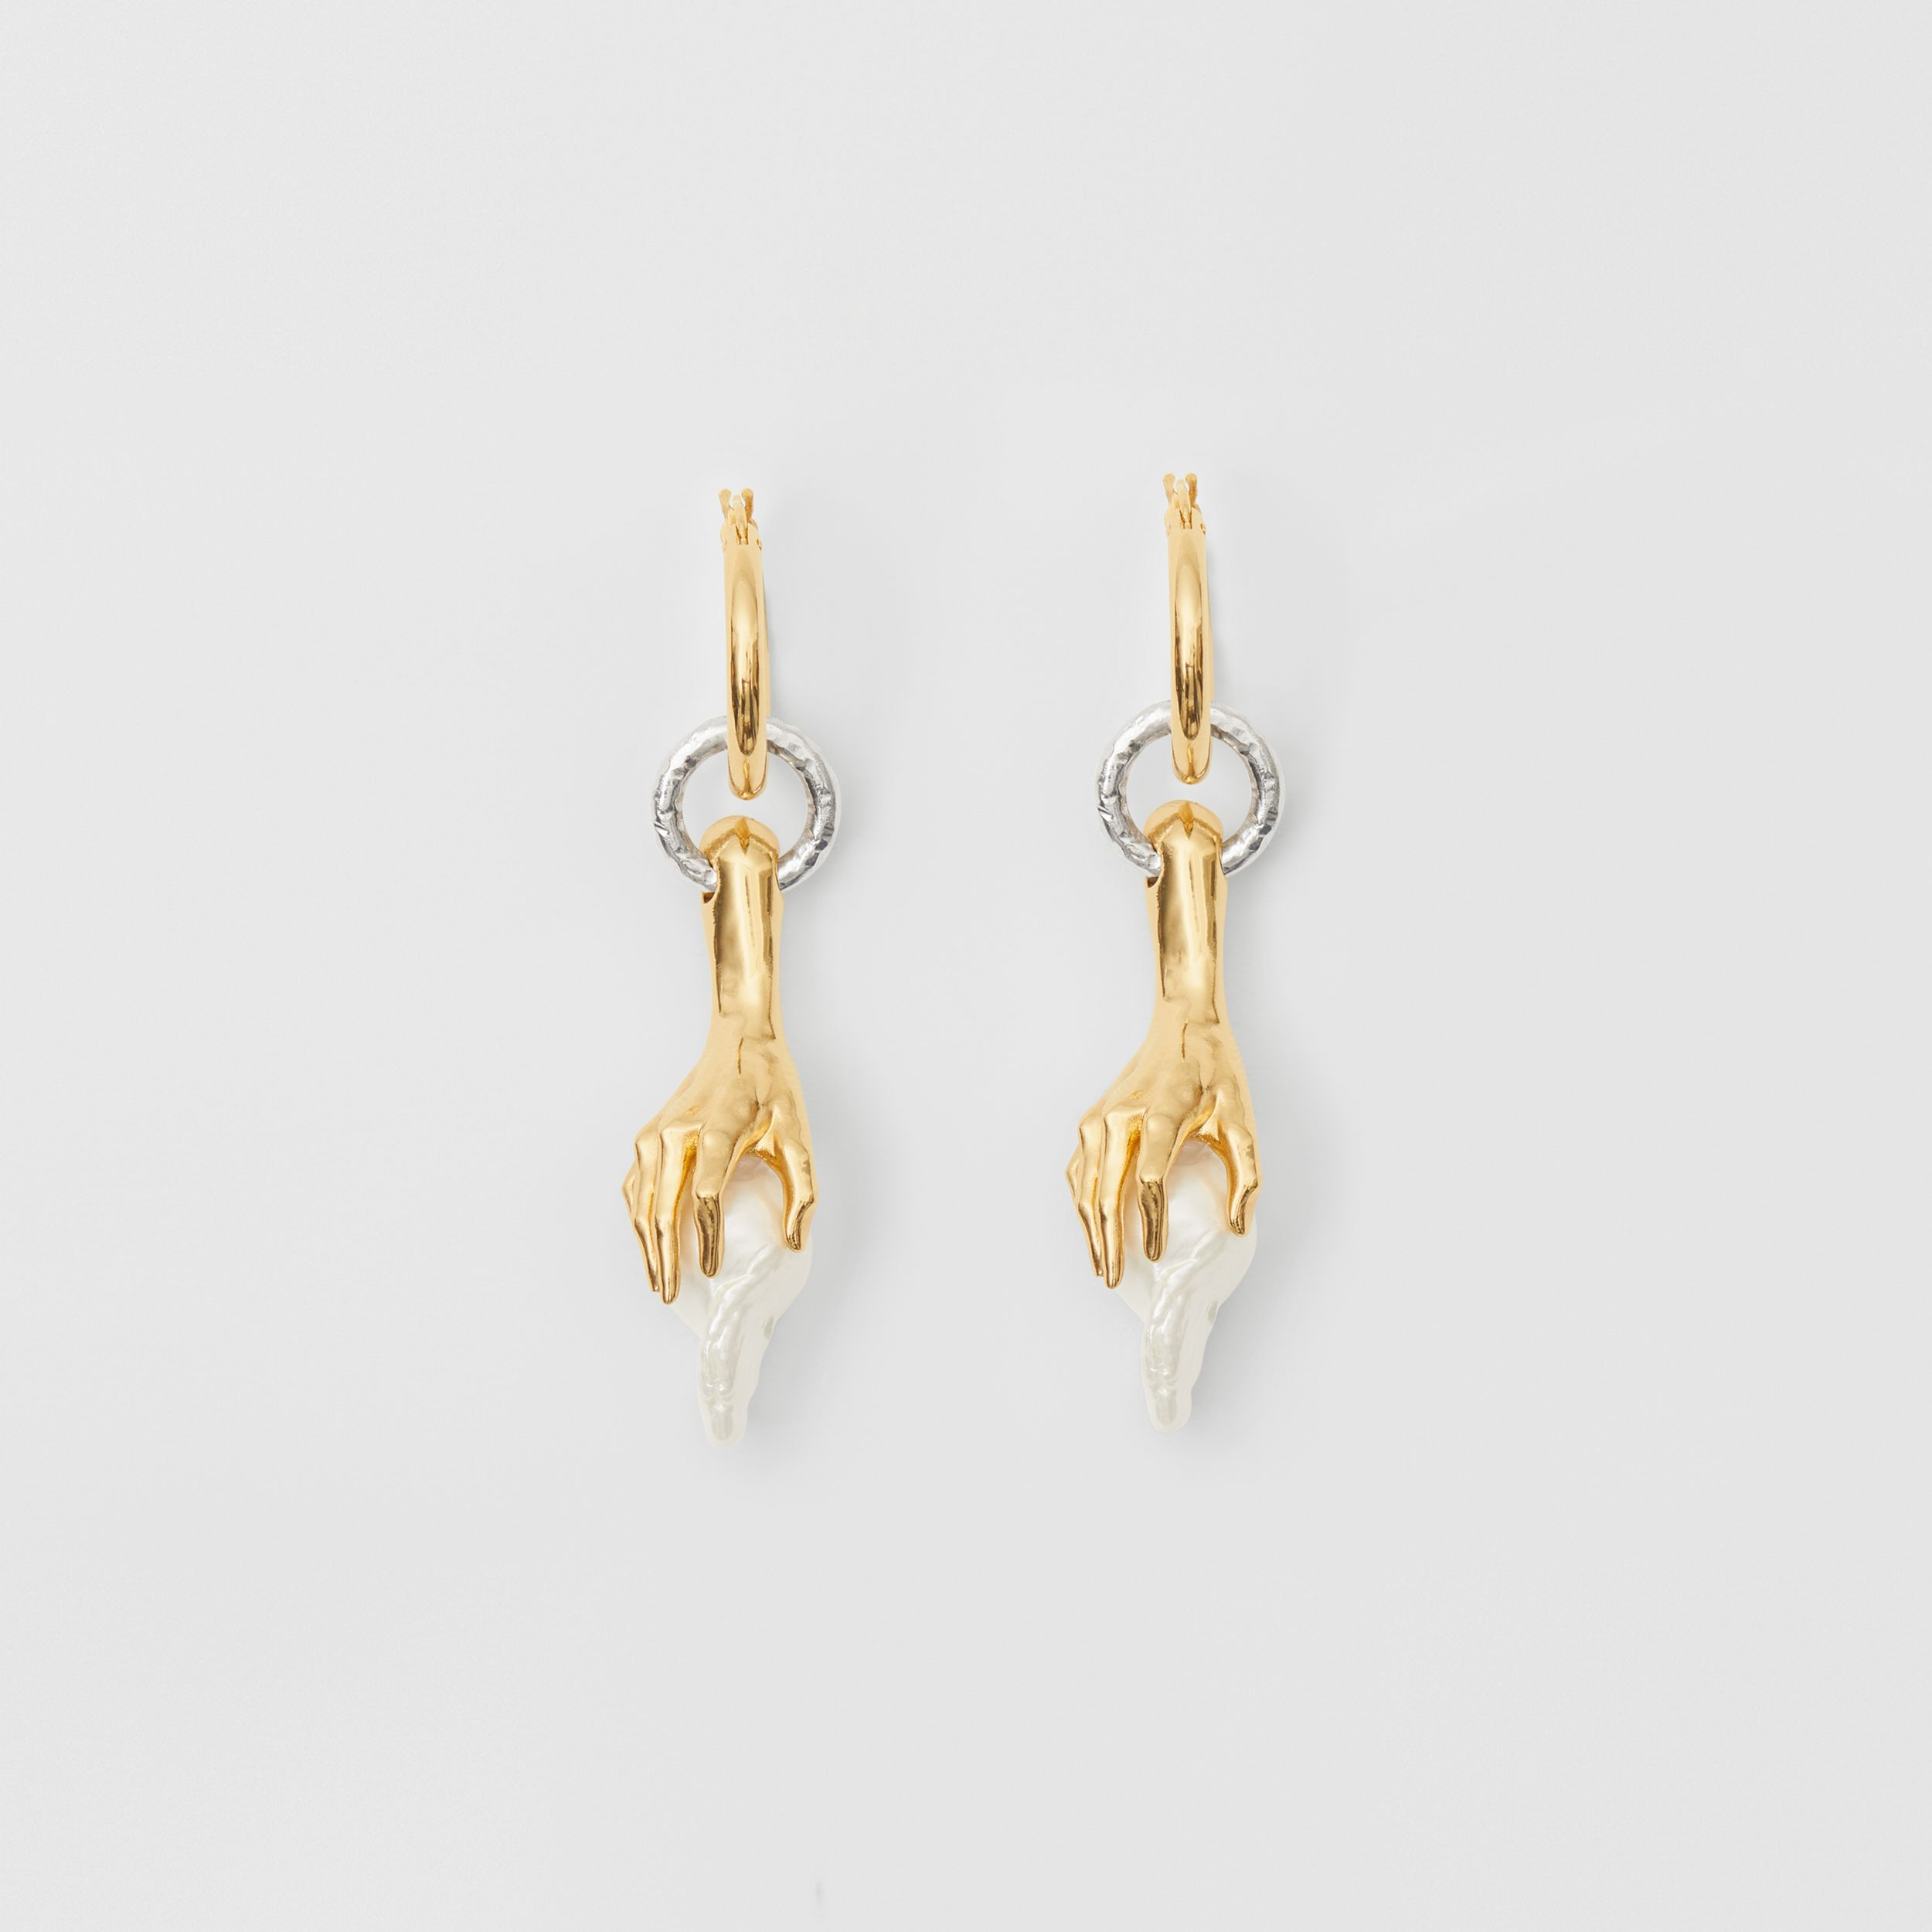 Resin Pearl Gold-plated Hoop Earrings in Light - Women | Burberry - 1